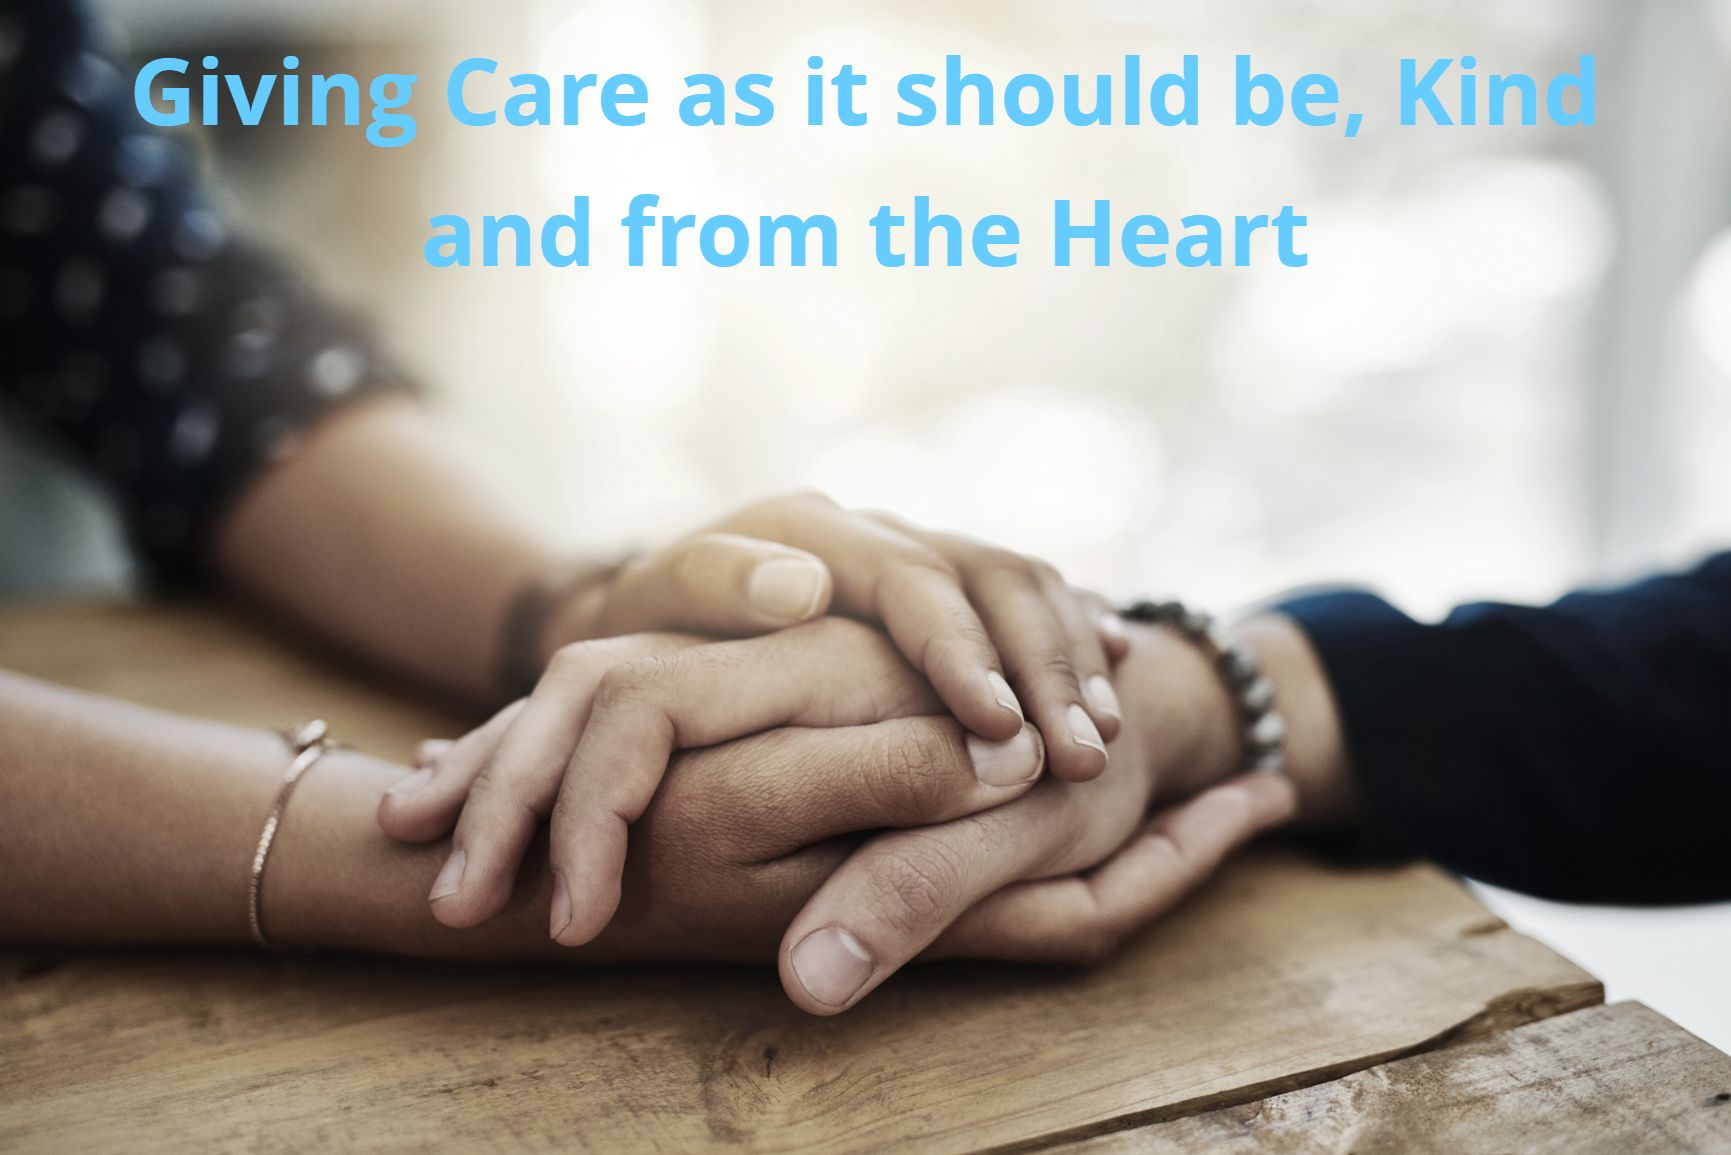 Kind Hearted Care Strap line